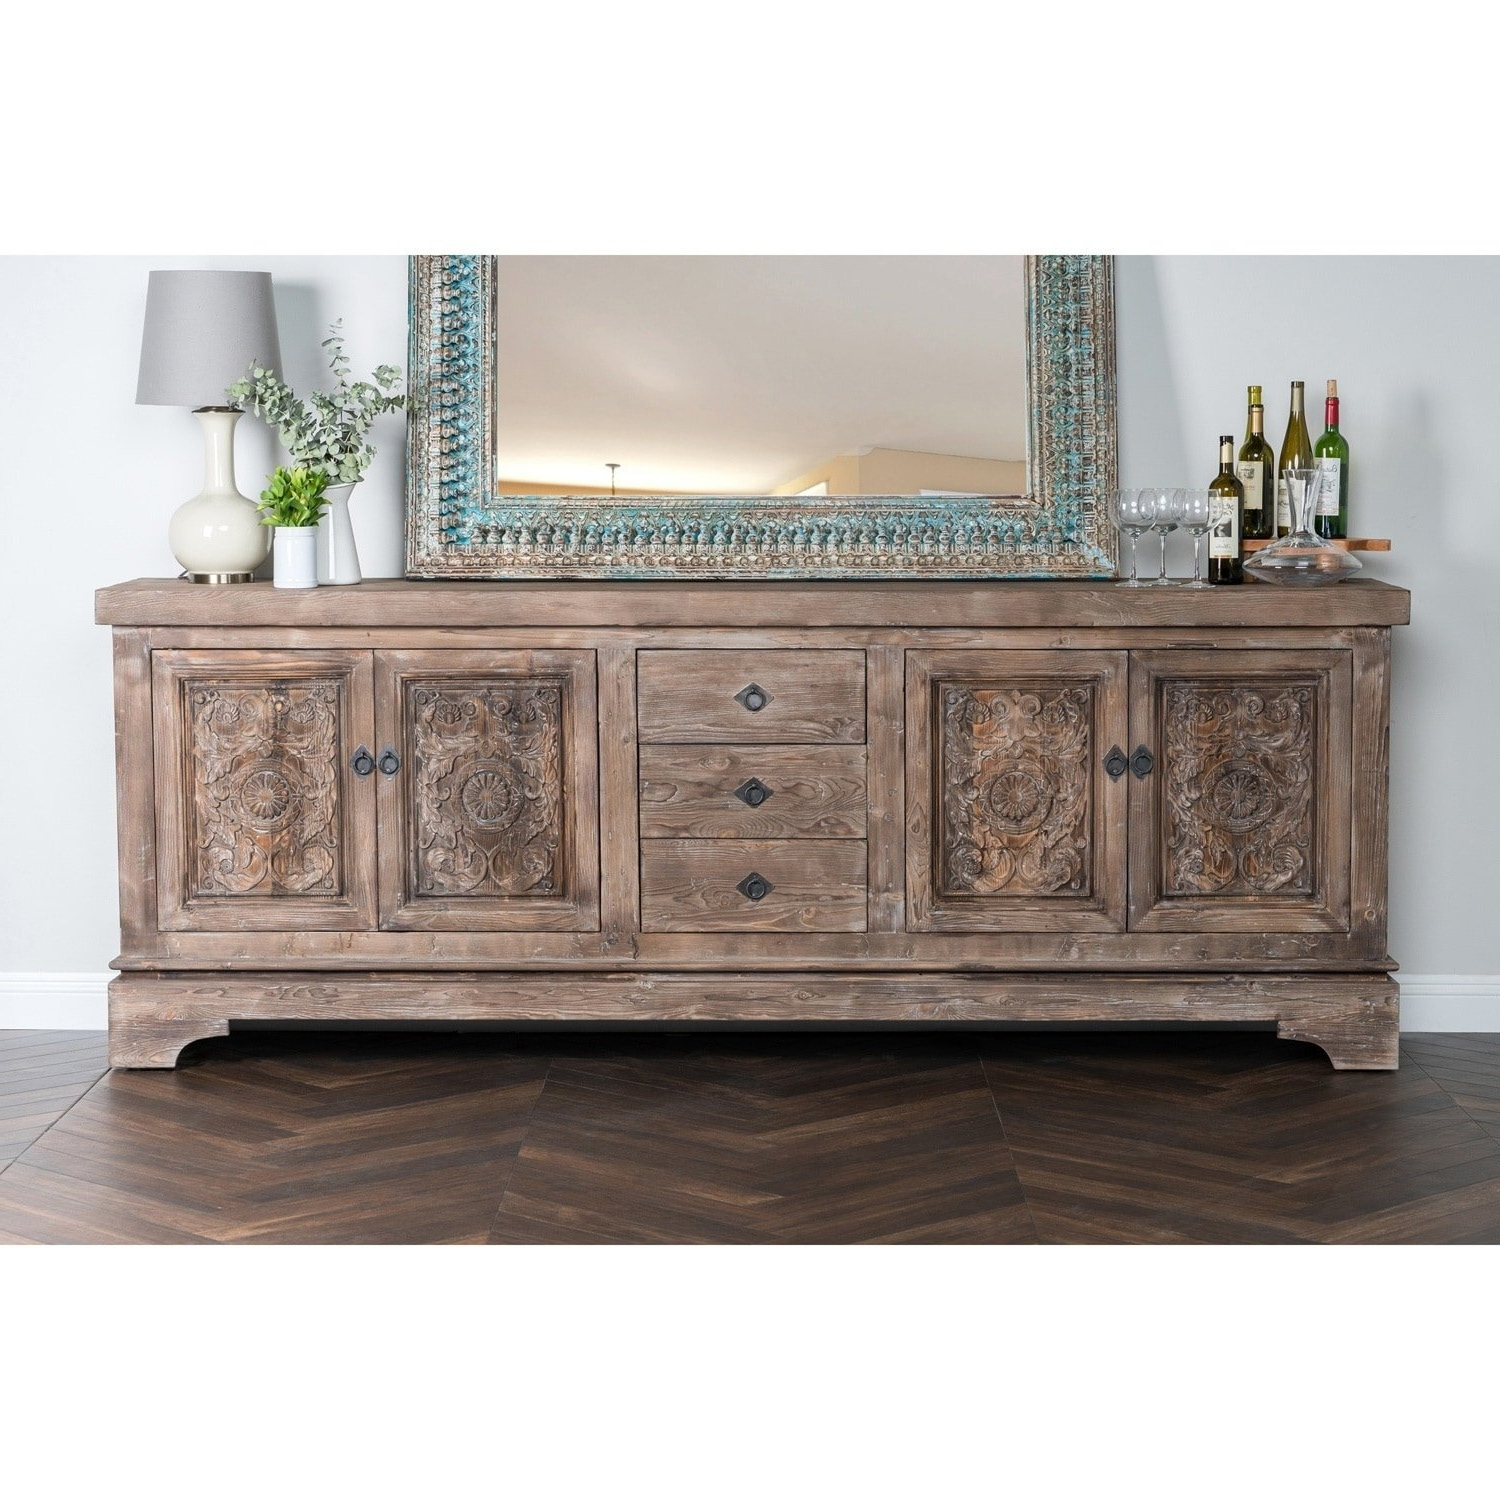 Shop Allen Rustic Taupe Reclaimed Pine 106 Inch Sideboardkosas Intended For Current Aged Pine 3 Drawer 2 Door Sideboards (View 18 of 20)